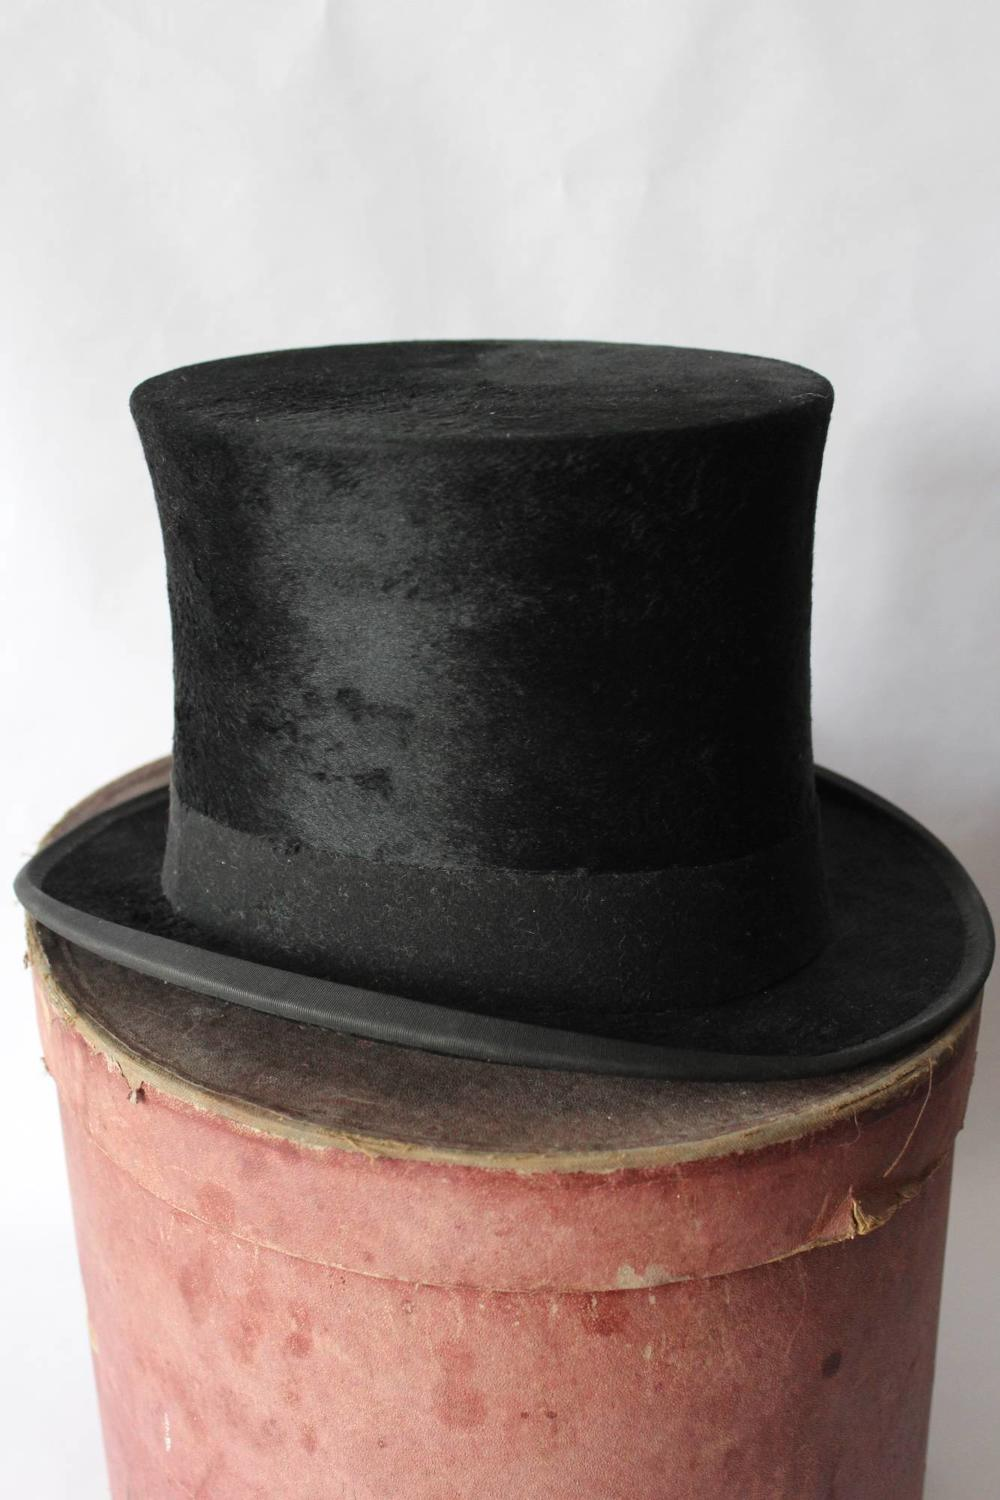 Antique 'Moleskin' Plush Silk Top Hat by Cuthbertson of London